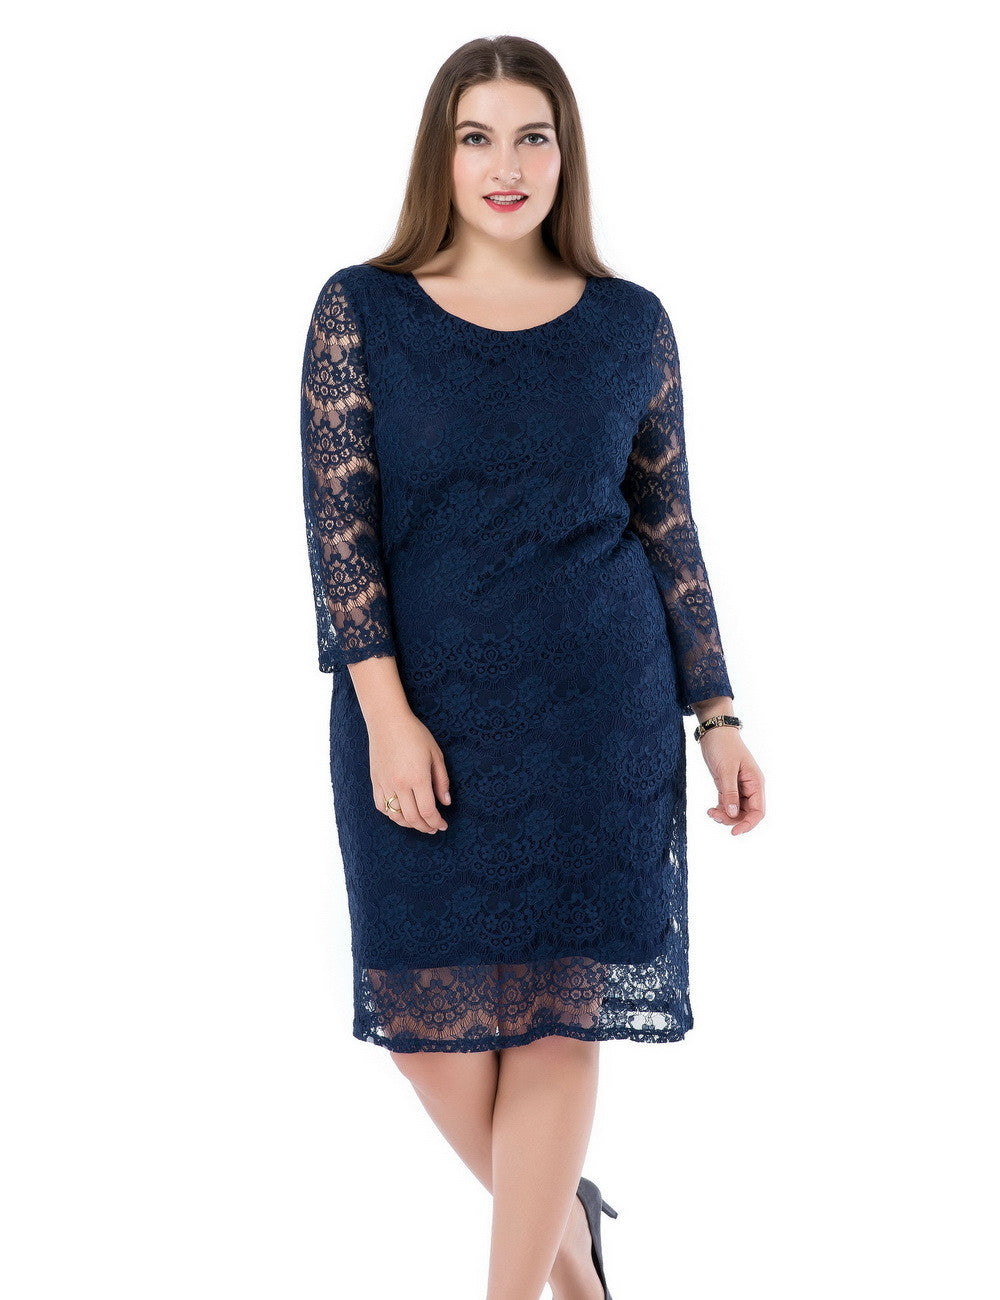 Chicwe Women's Lined Plus Size Lace Dress 3/4 Sleeves US16-26